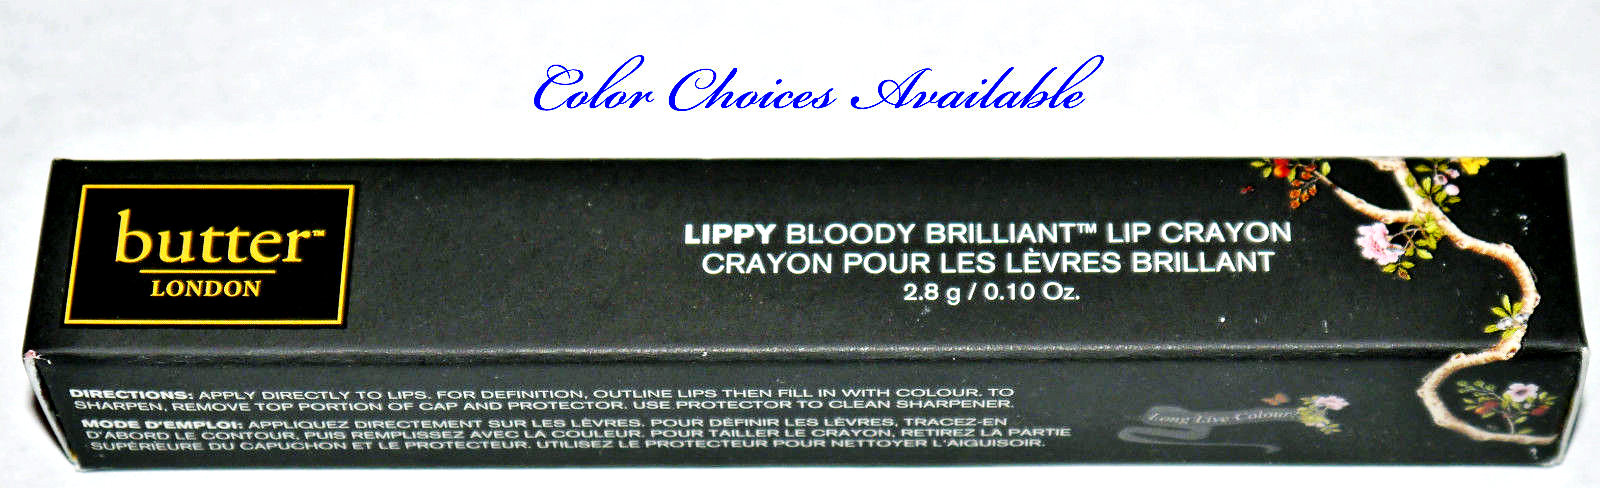 Butter London LIPPY Bloody Brilliant Lip Crayon 0.10 oz 14419